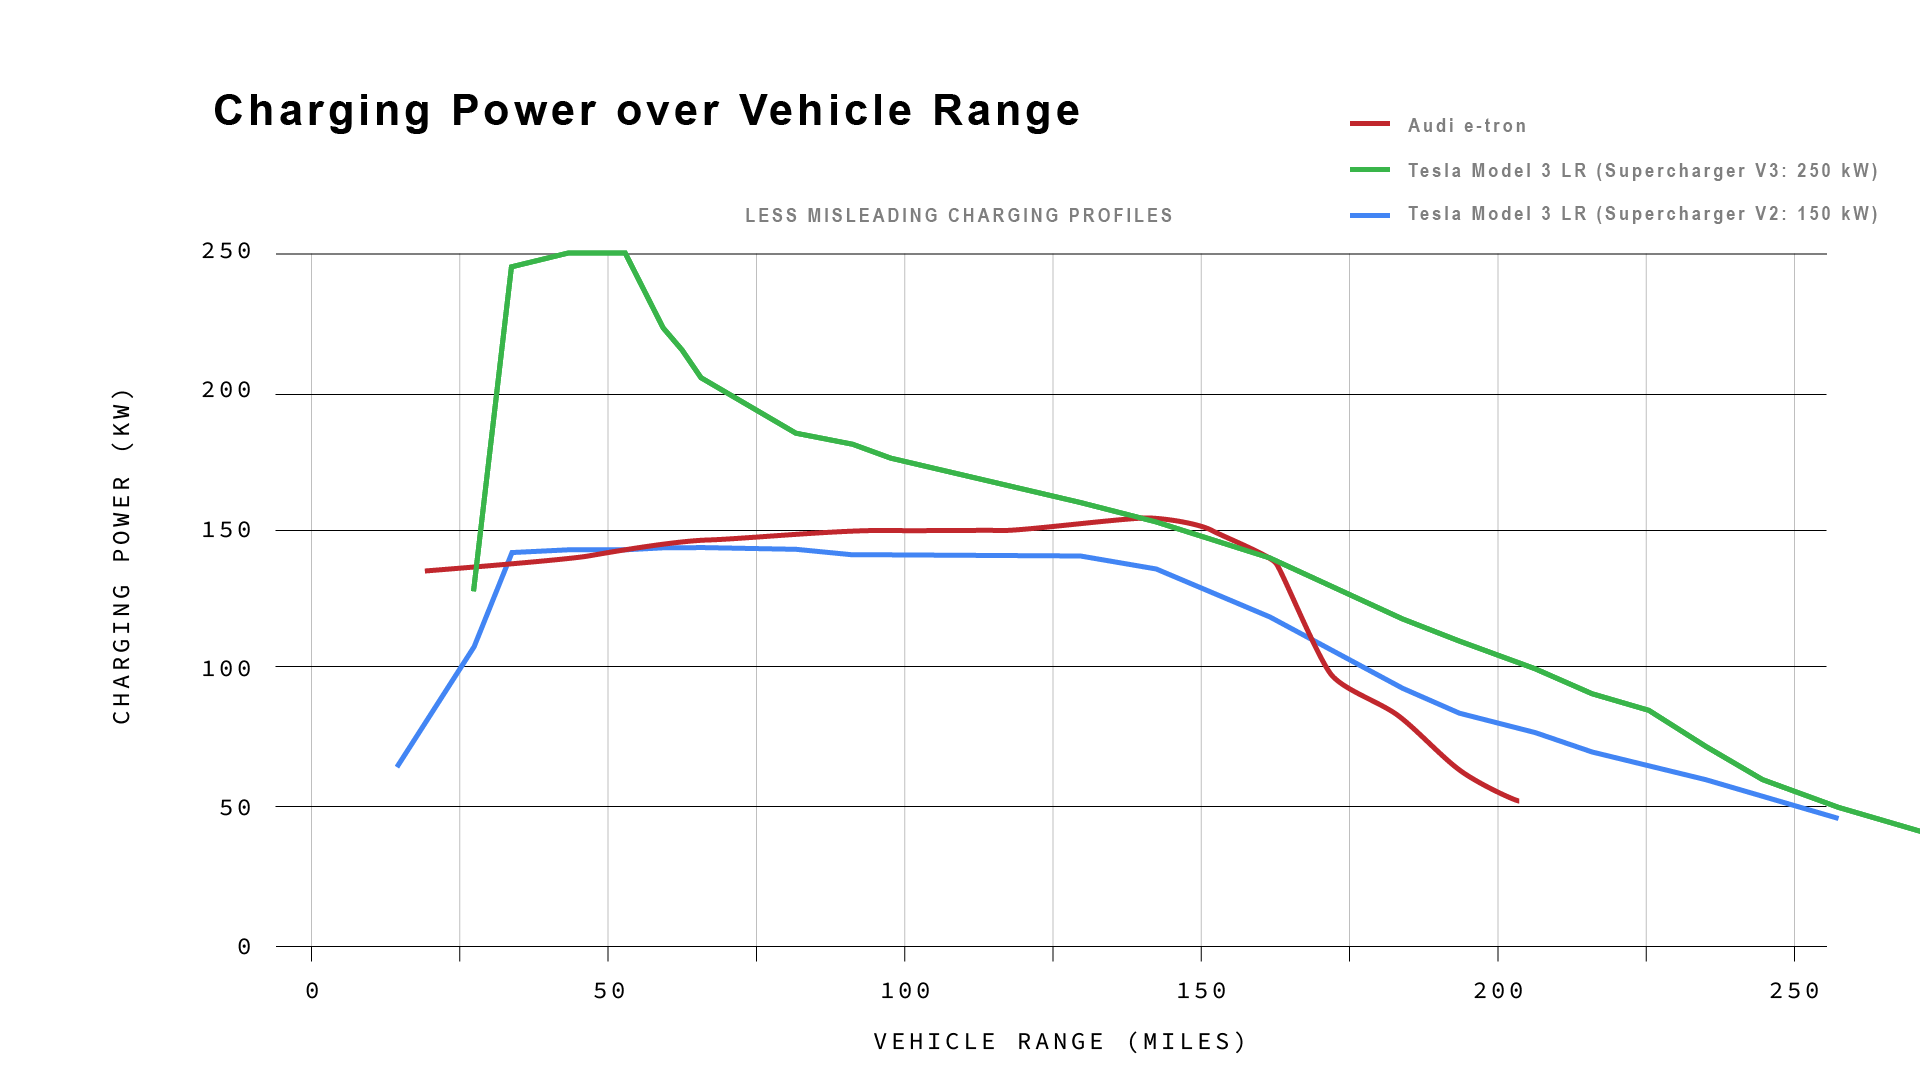 Correcting Audi Tesla Model 3 Charges Over 2 Times Faster Than Audi